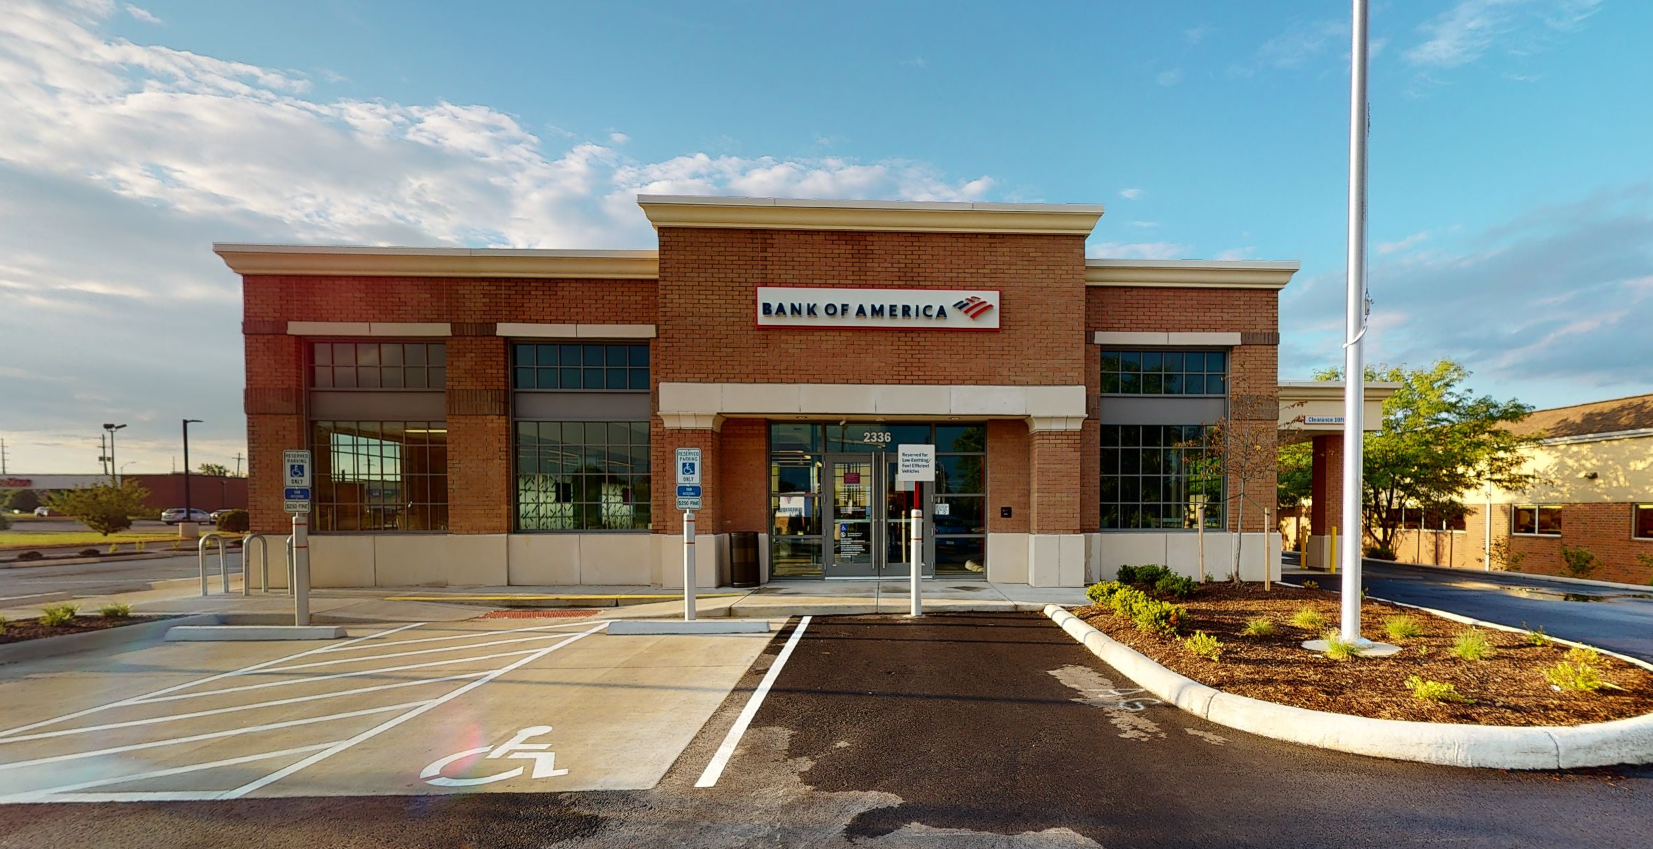 Bank of America financial center with drive-thru ATM   2336 Stringtown Rd, Grove City, OH 43123